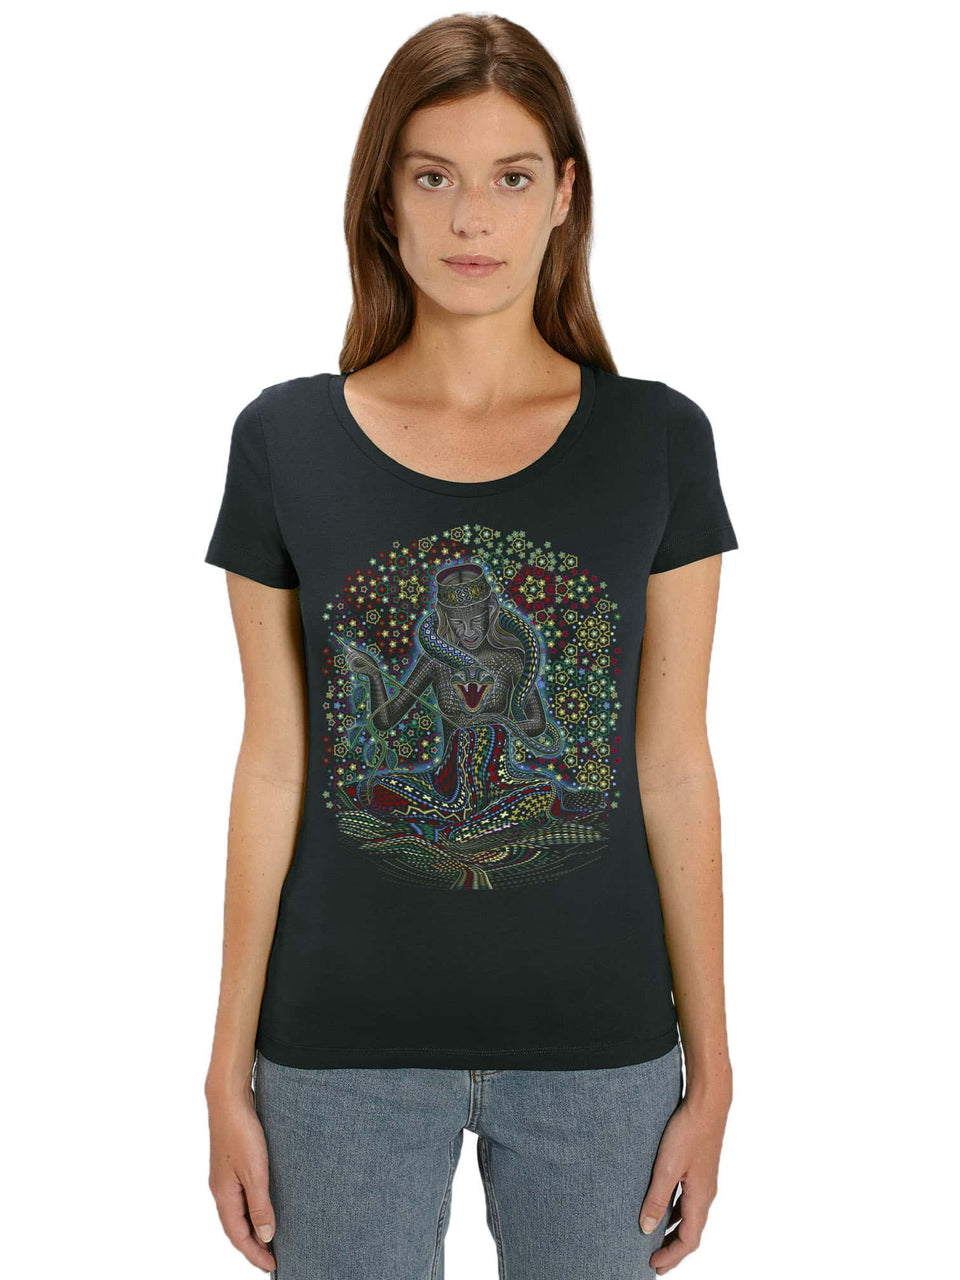 Song Weaving Made To Order Women t-shirt - Black